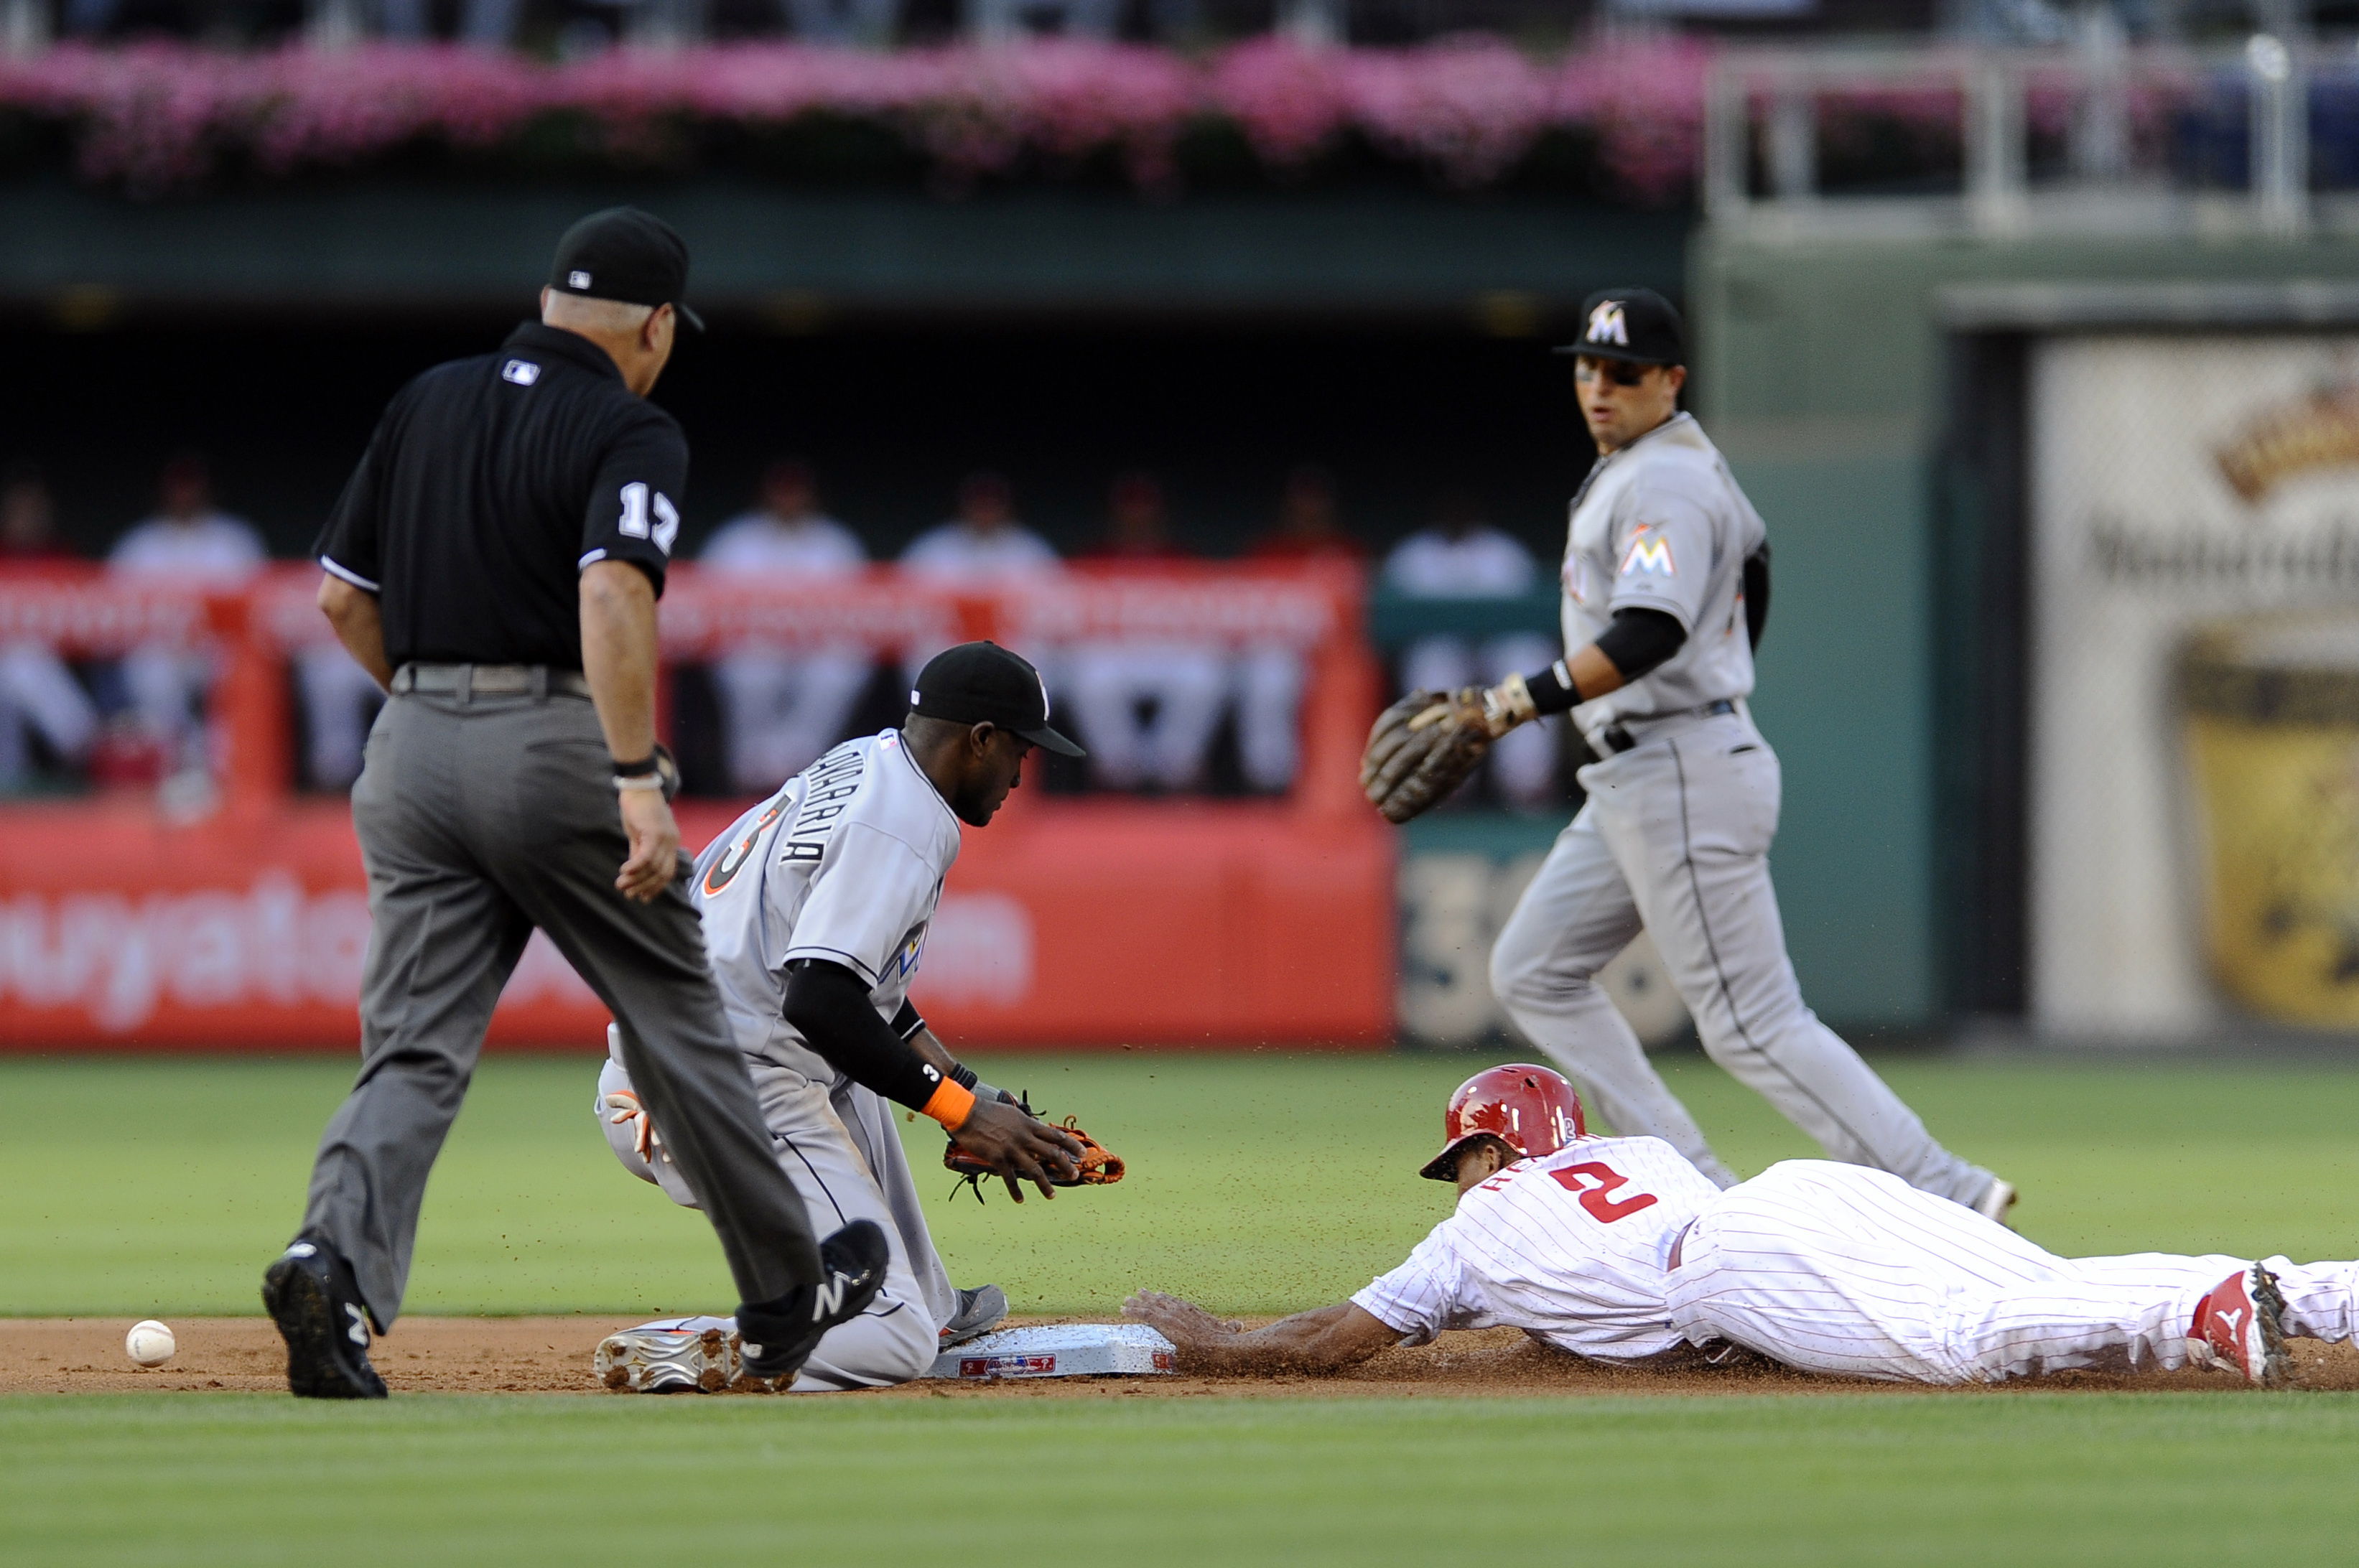 Philadelphia Phillies' Ben Revere (2) steals second base in front of Miami Marlins shortstop Adeiny Hechavarria who can't handle the throw during the first inning of a baseball game, Saturday, July 18, 2015, in Philadelphia. (AP Photo/Michael Perez)